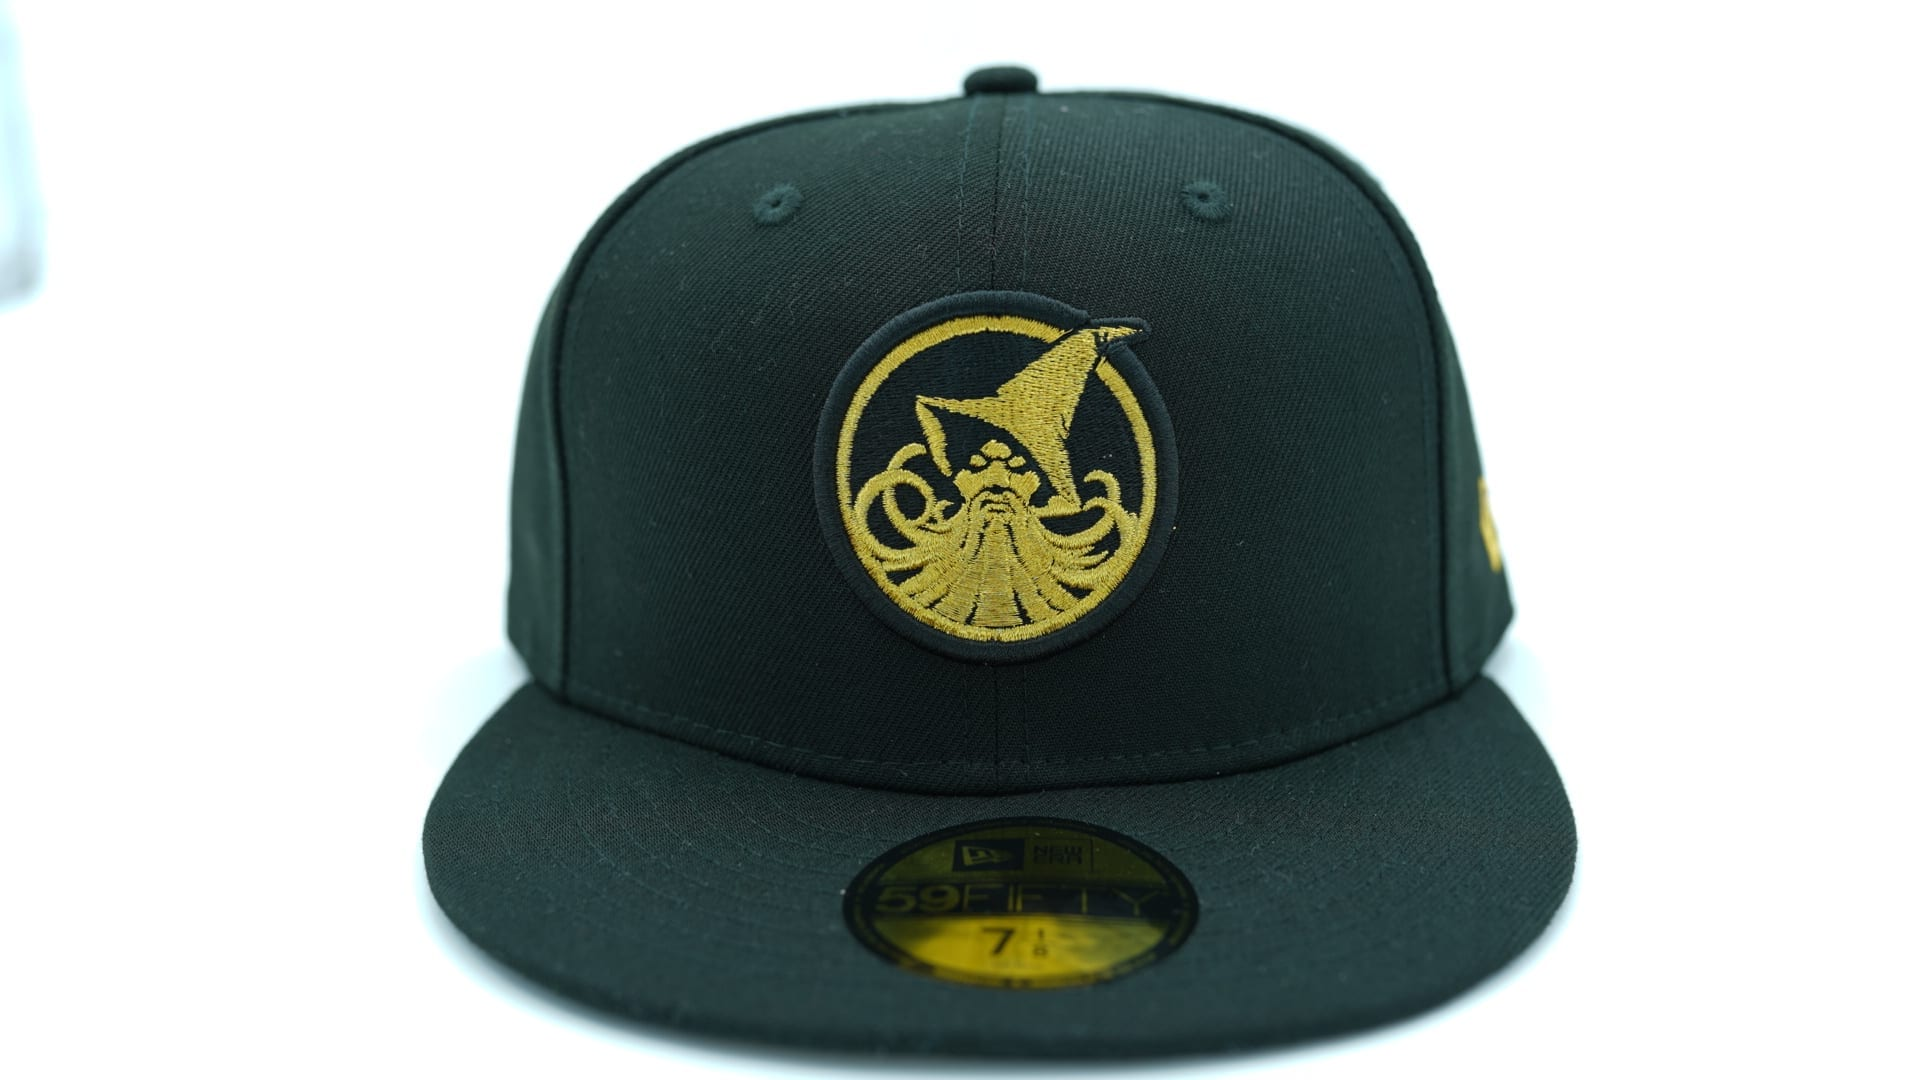 Golden State Warriors '71-'89 Logo Slate Grey Reflective Foil Fitted Hat by MITCHELL & NESS x NBA